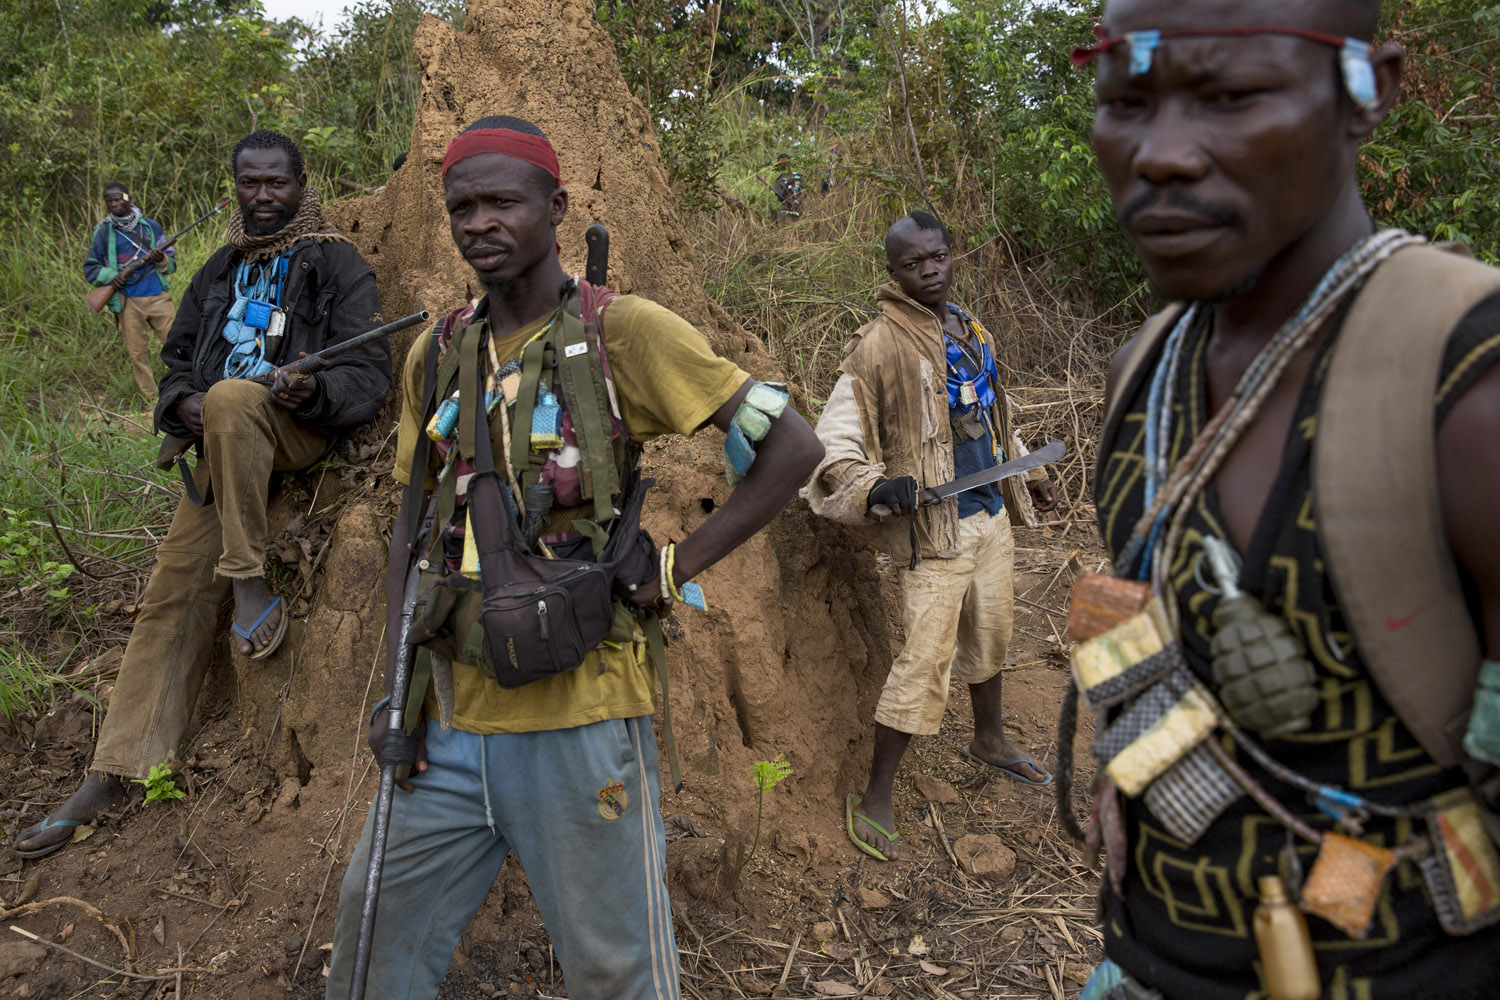 Dec. 4, 2013. A day before the attack, Anti-balaka fighters hiding in the bush around Bangui.